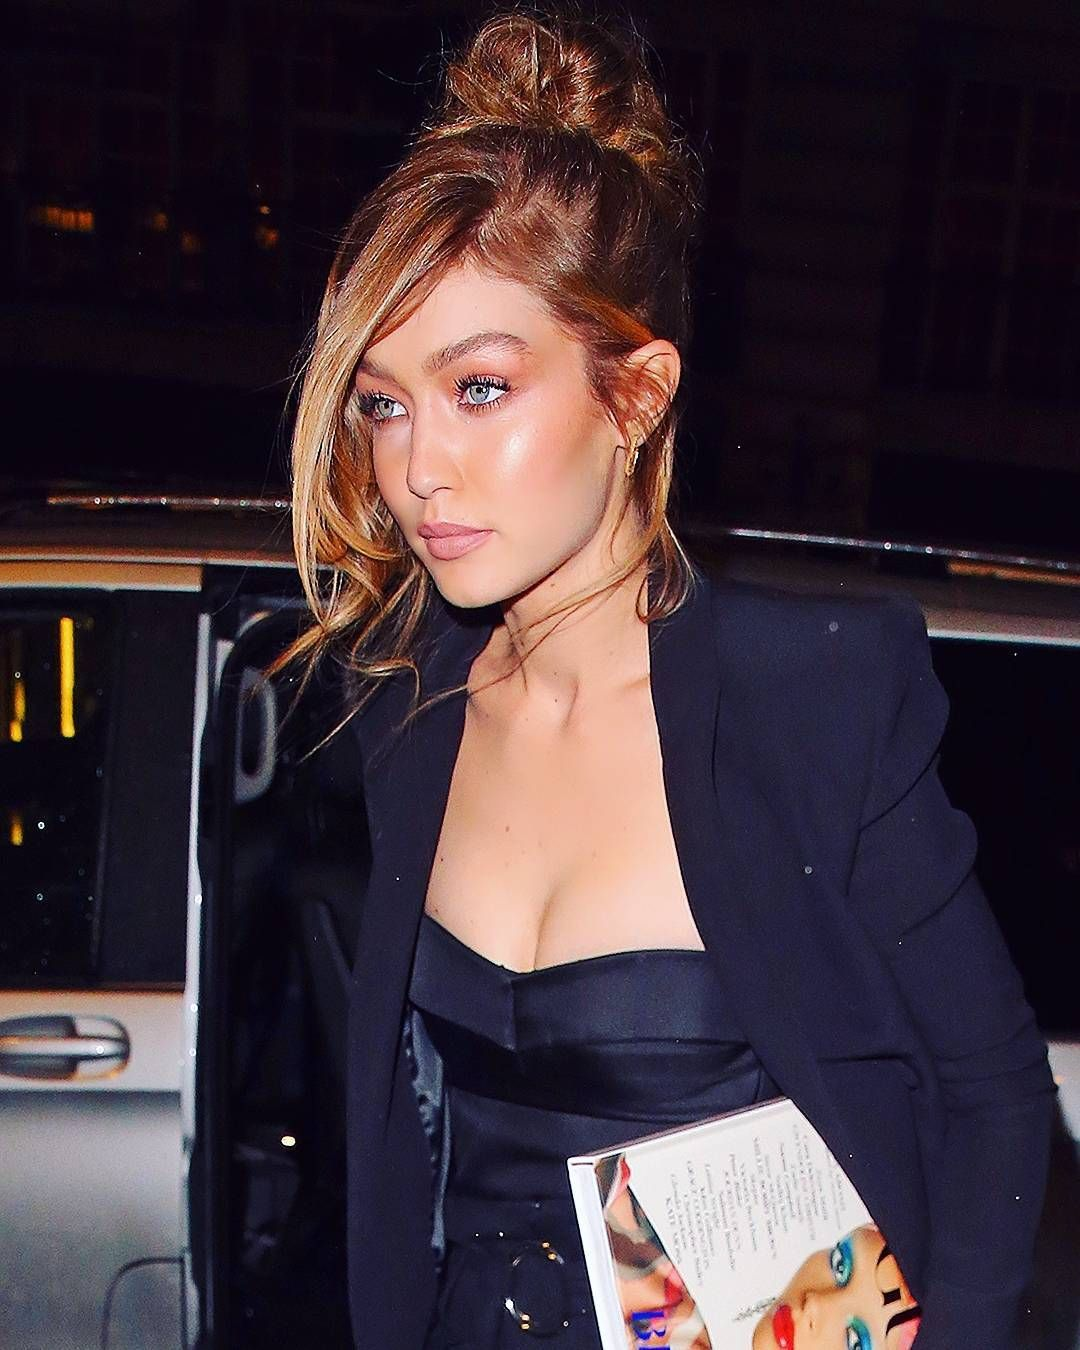 fb554d8ff46 Pin by July . on Gigi Hadid | Dinner in paris, Camisole top, Tank tops